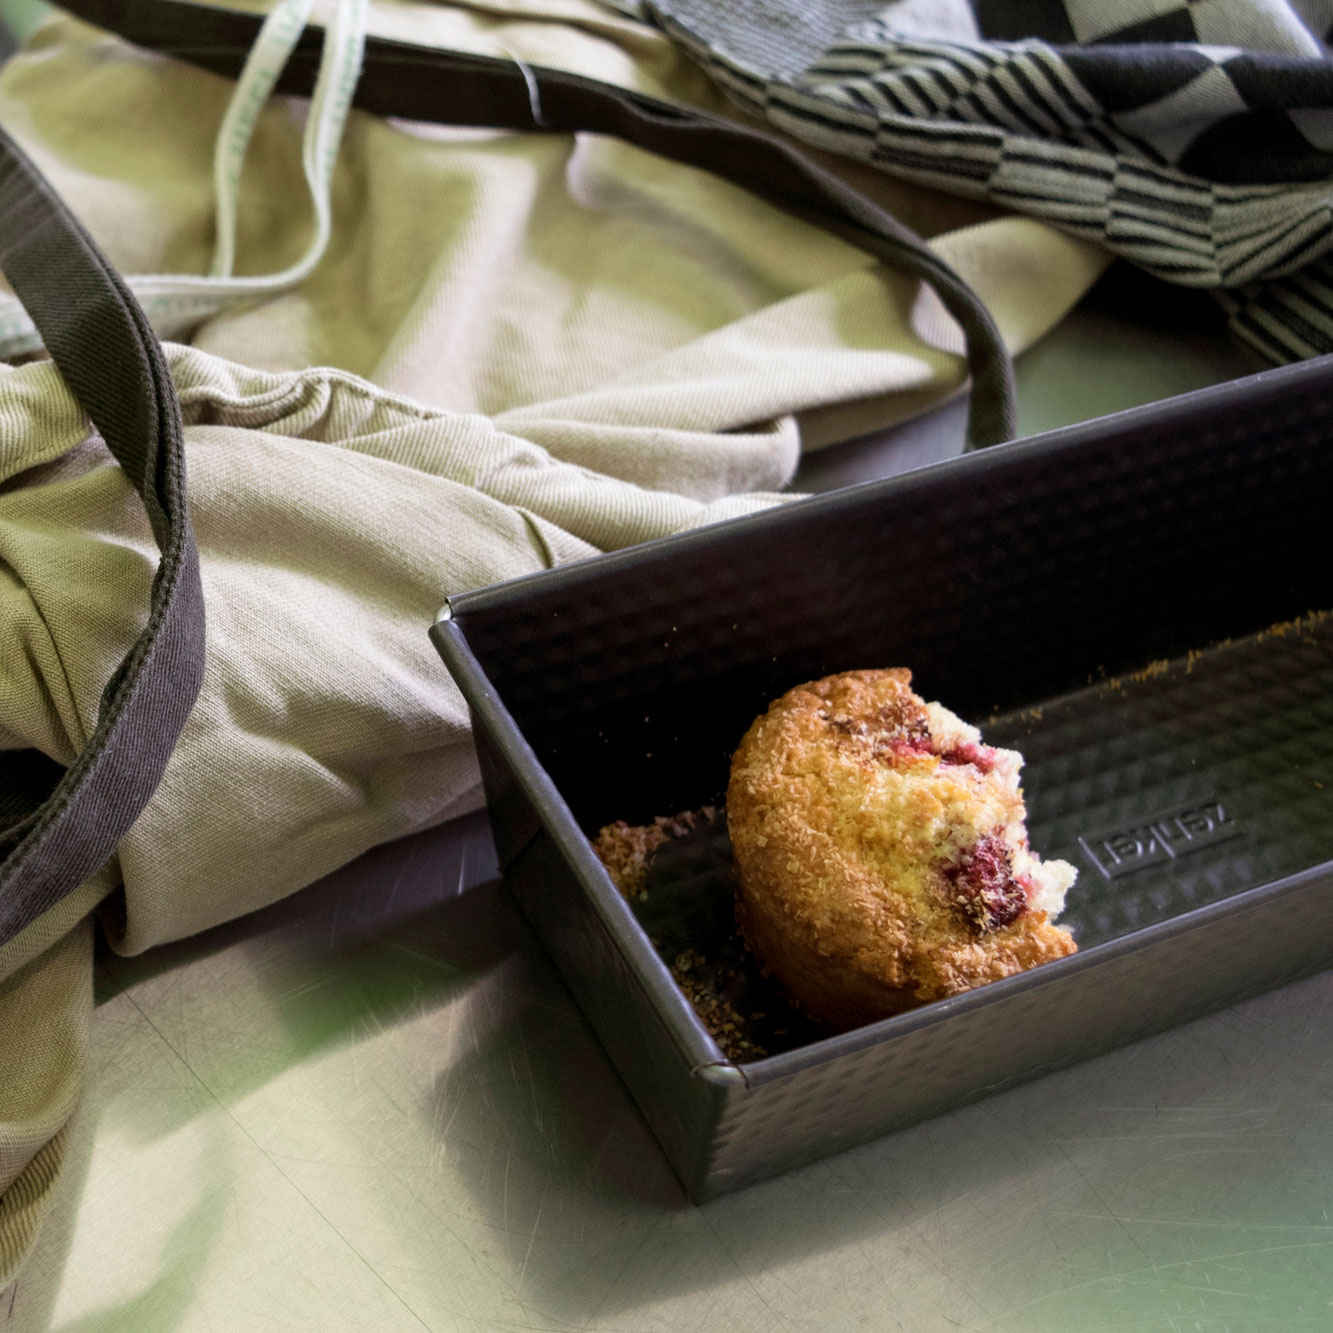 Baked-in-amsterdam-citinerary-muffin-1024px.jpg